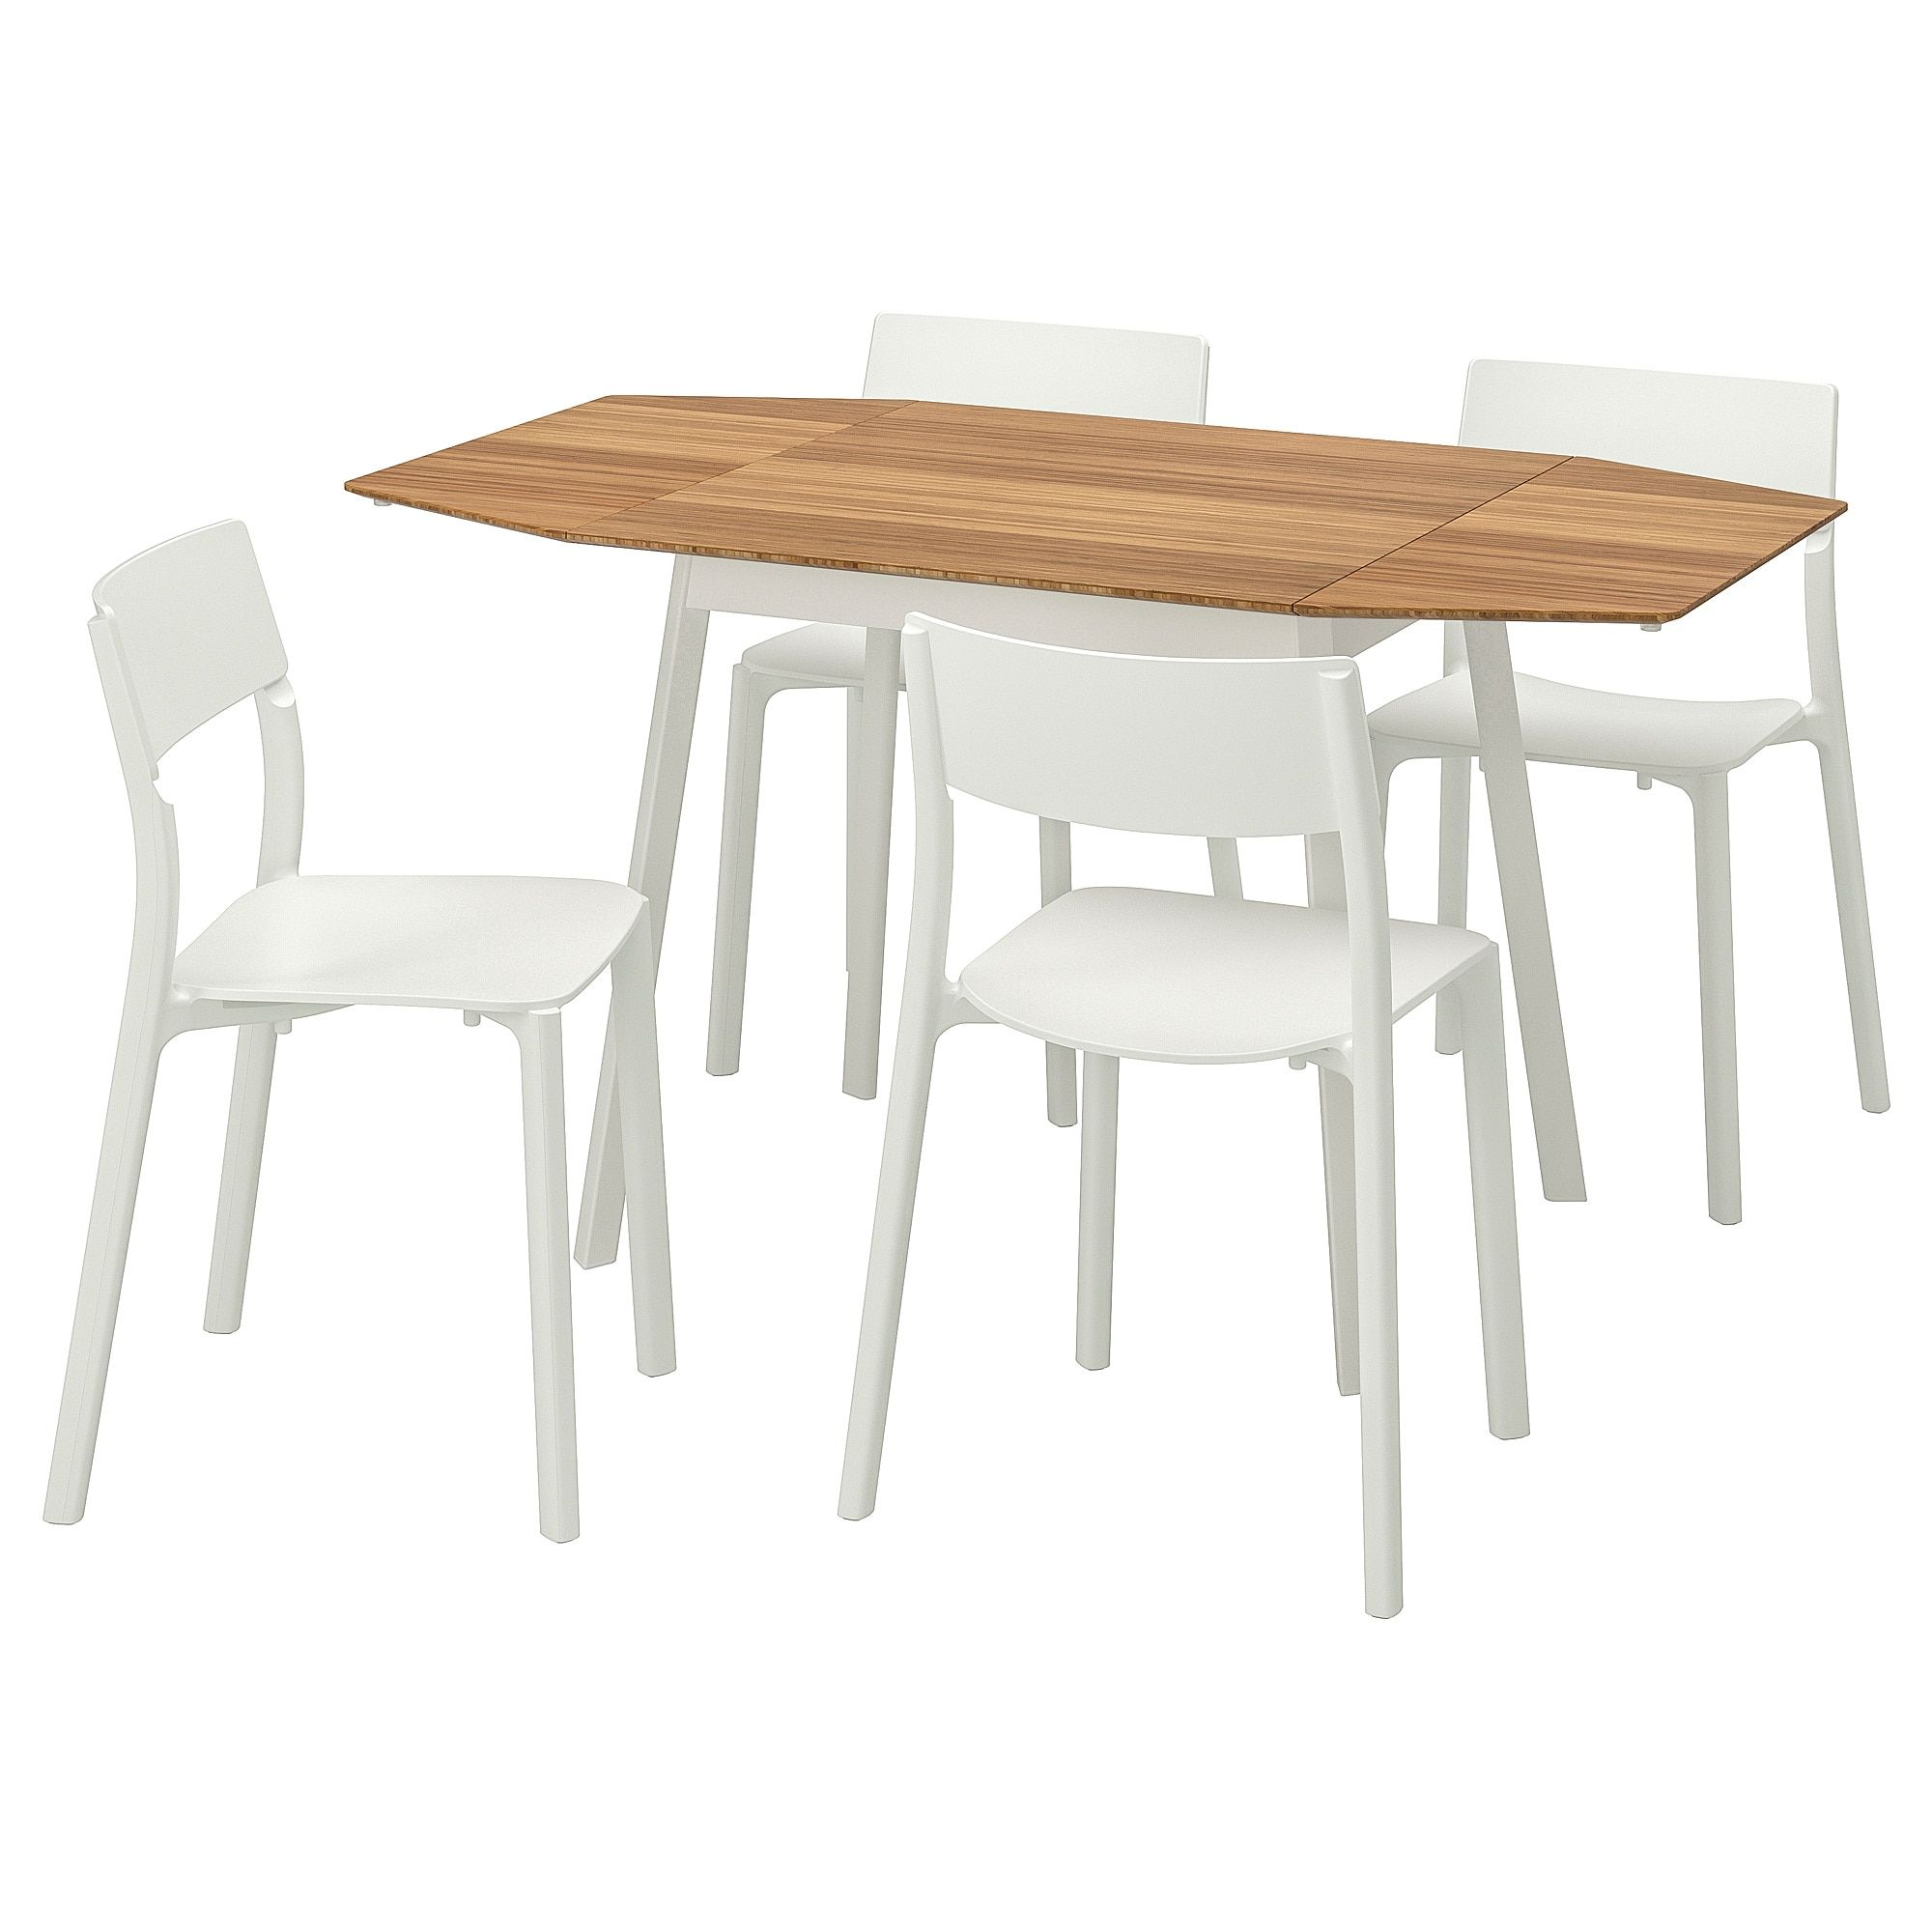 Ikea Ikea Ps 2012 Janinge Bamboo White Table And 4 Chairs In